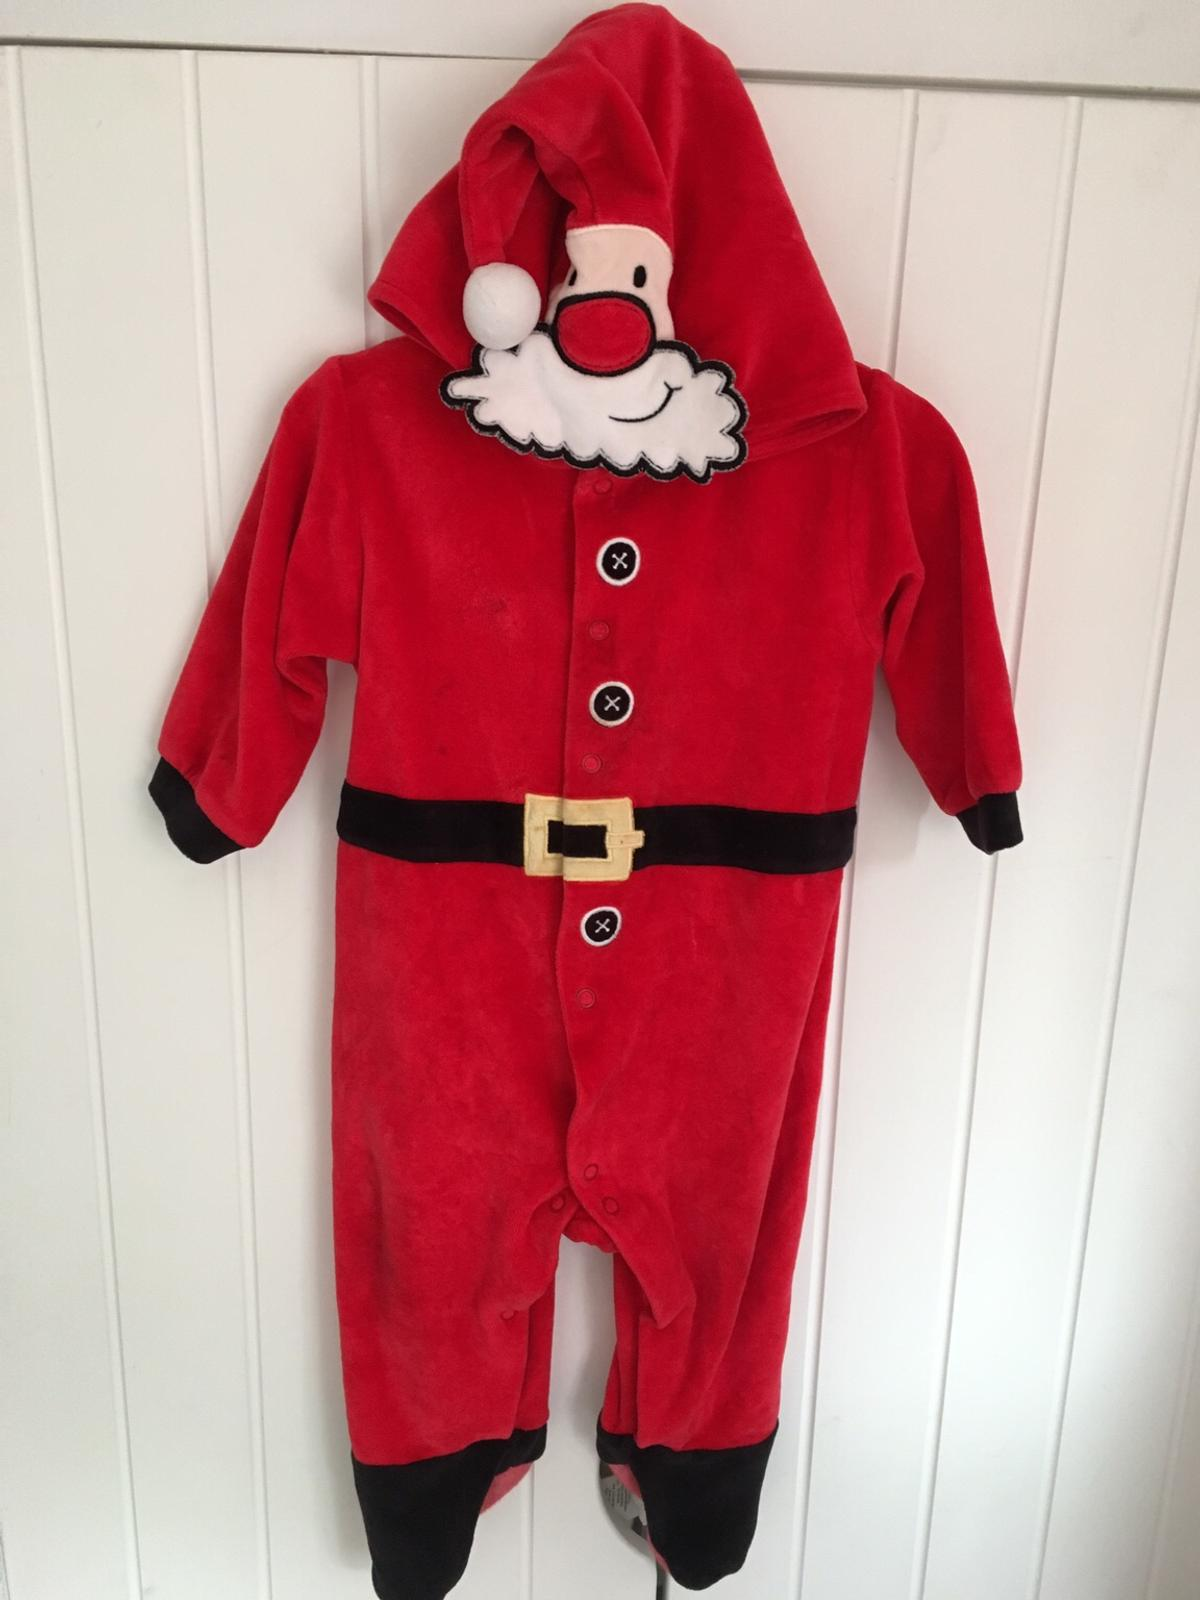 eac86a3af Father Christmas outfit in SE15 London for £3.00 for sale - Shpock